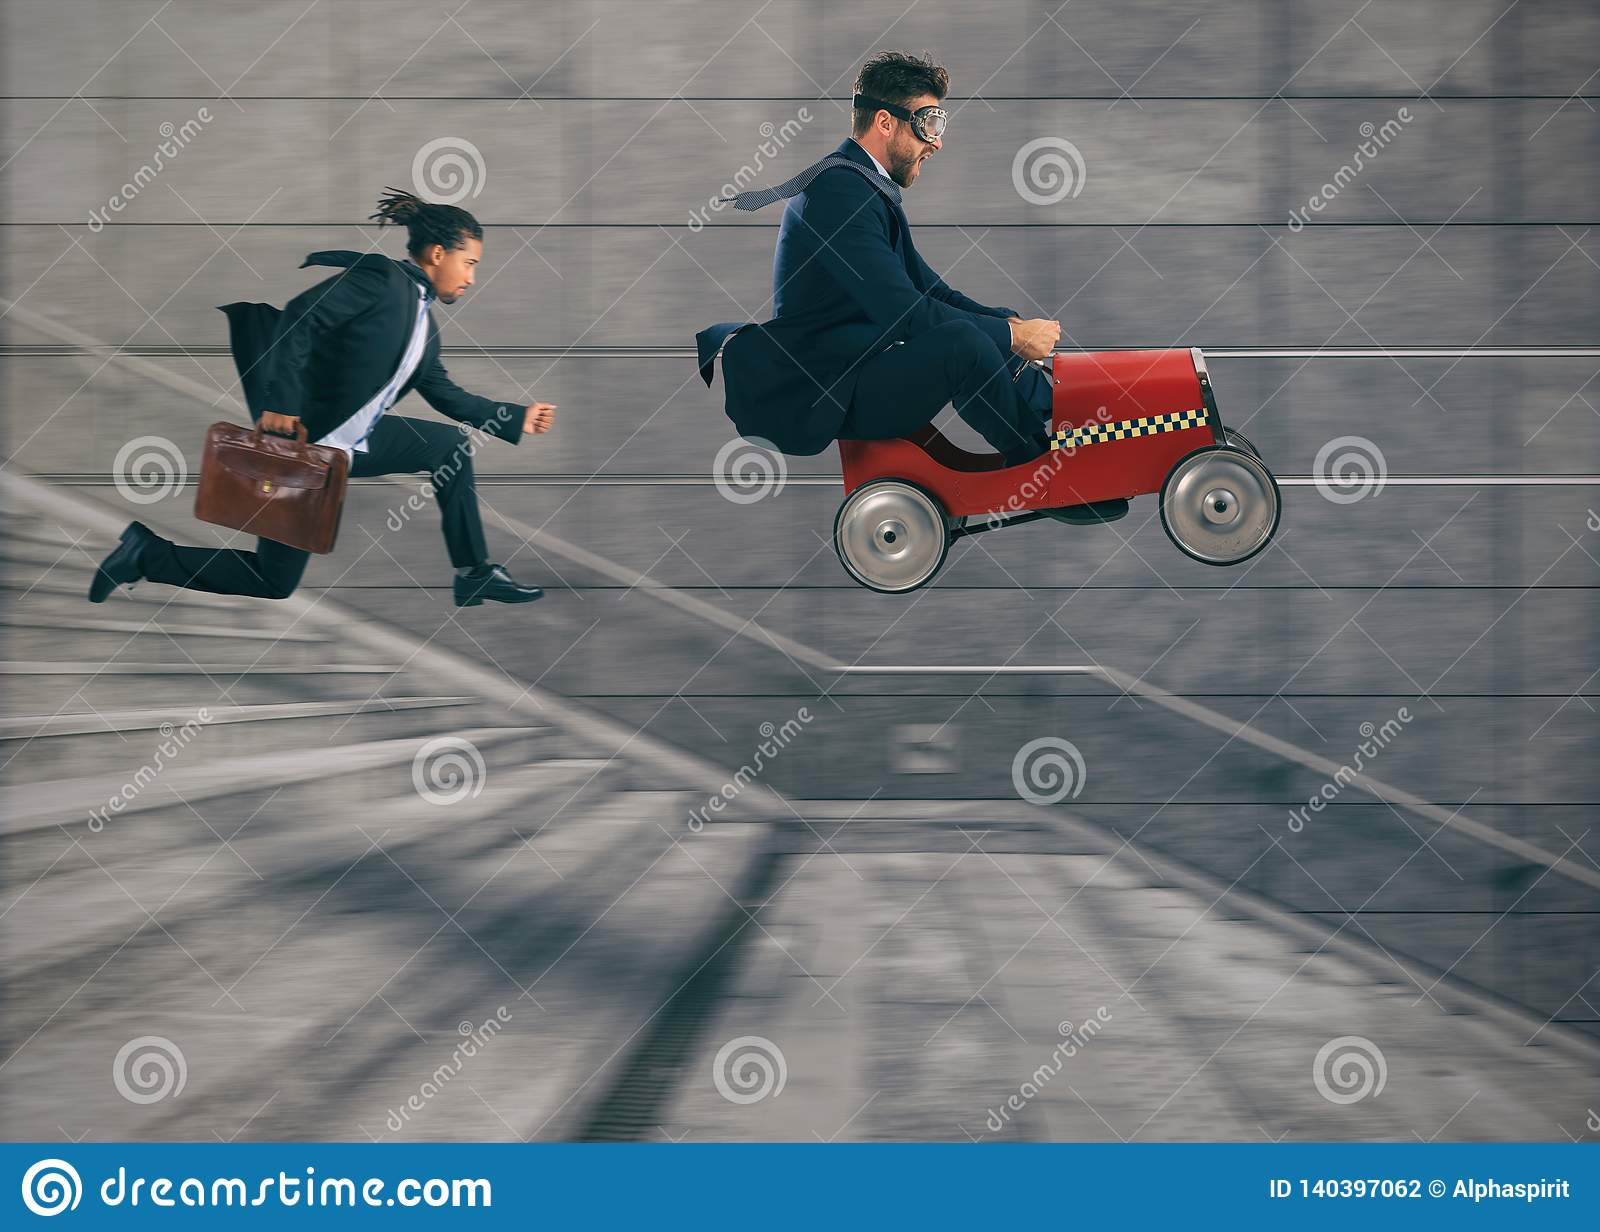 Reckless business man races with a car to win a competition against the competitors. Concept of success and competition